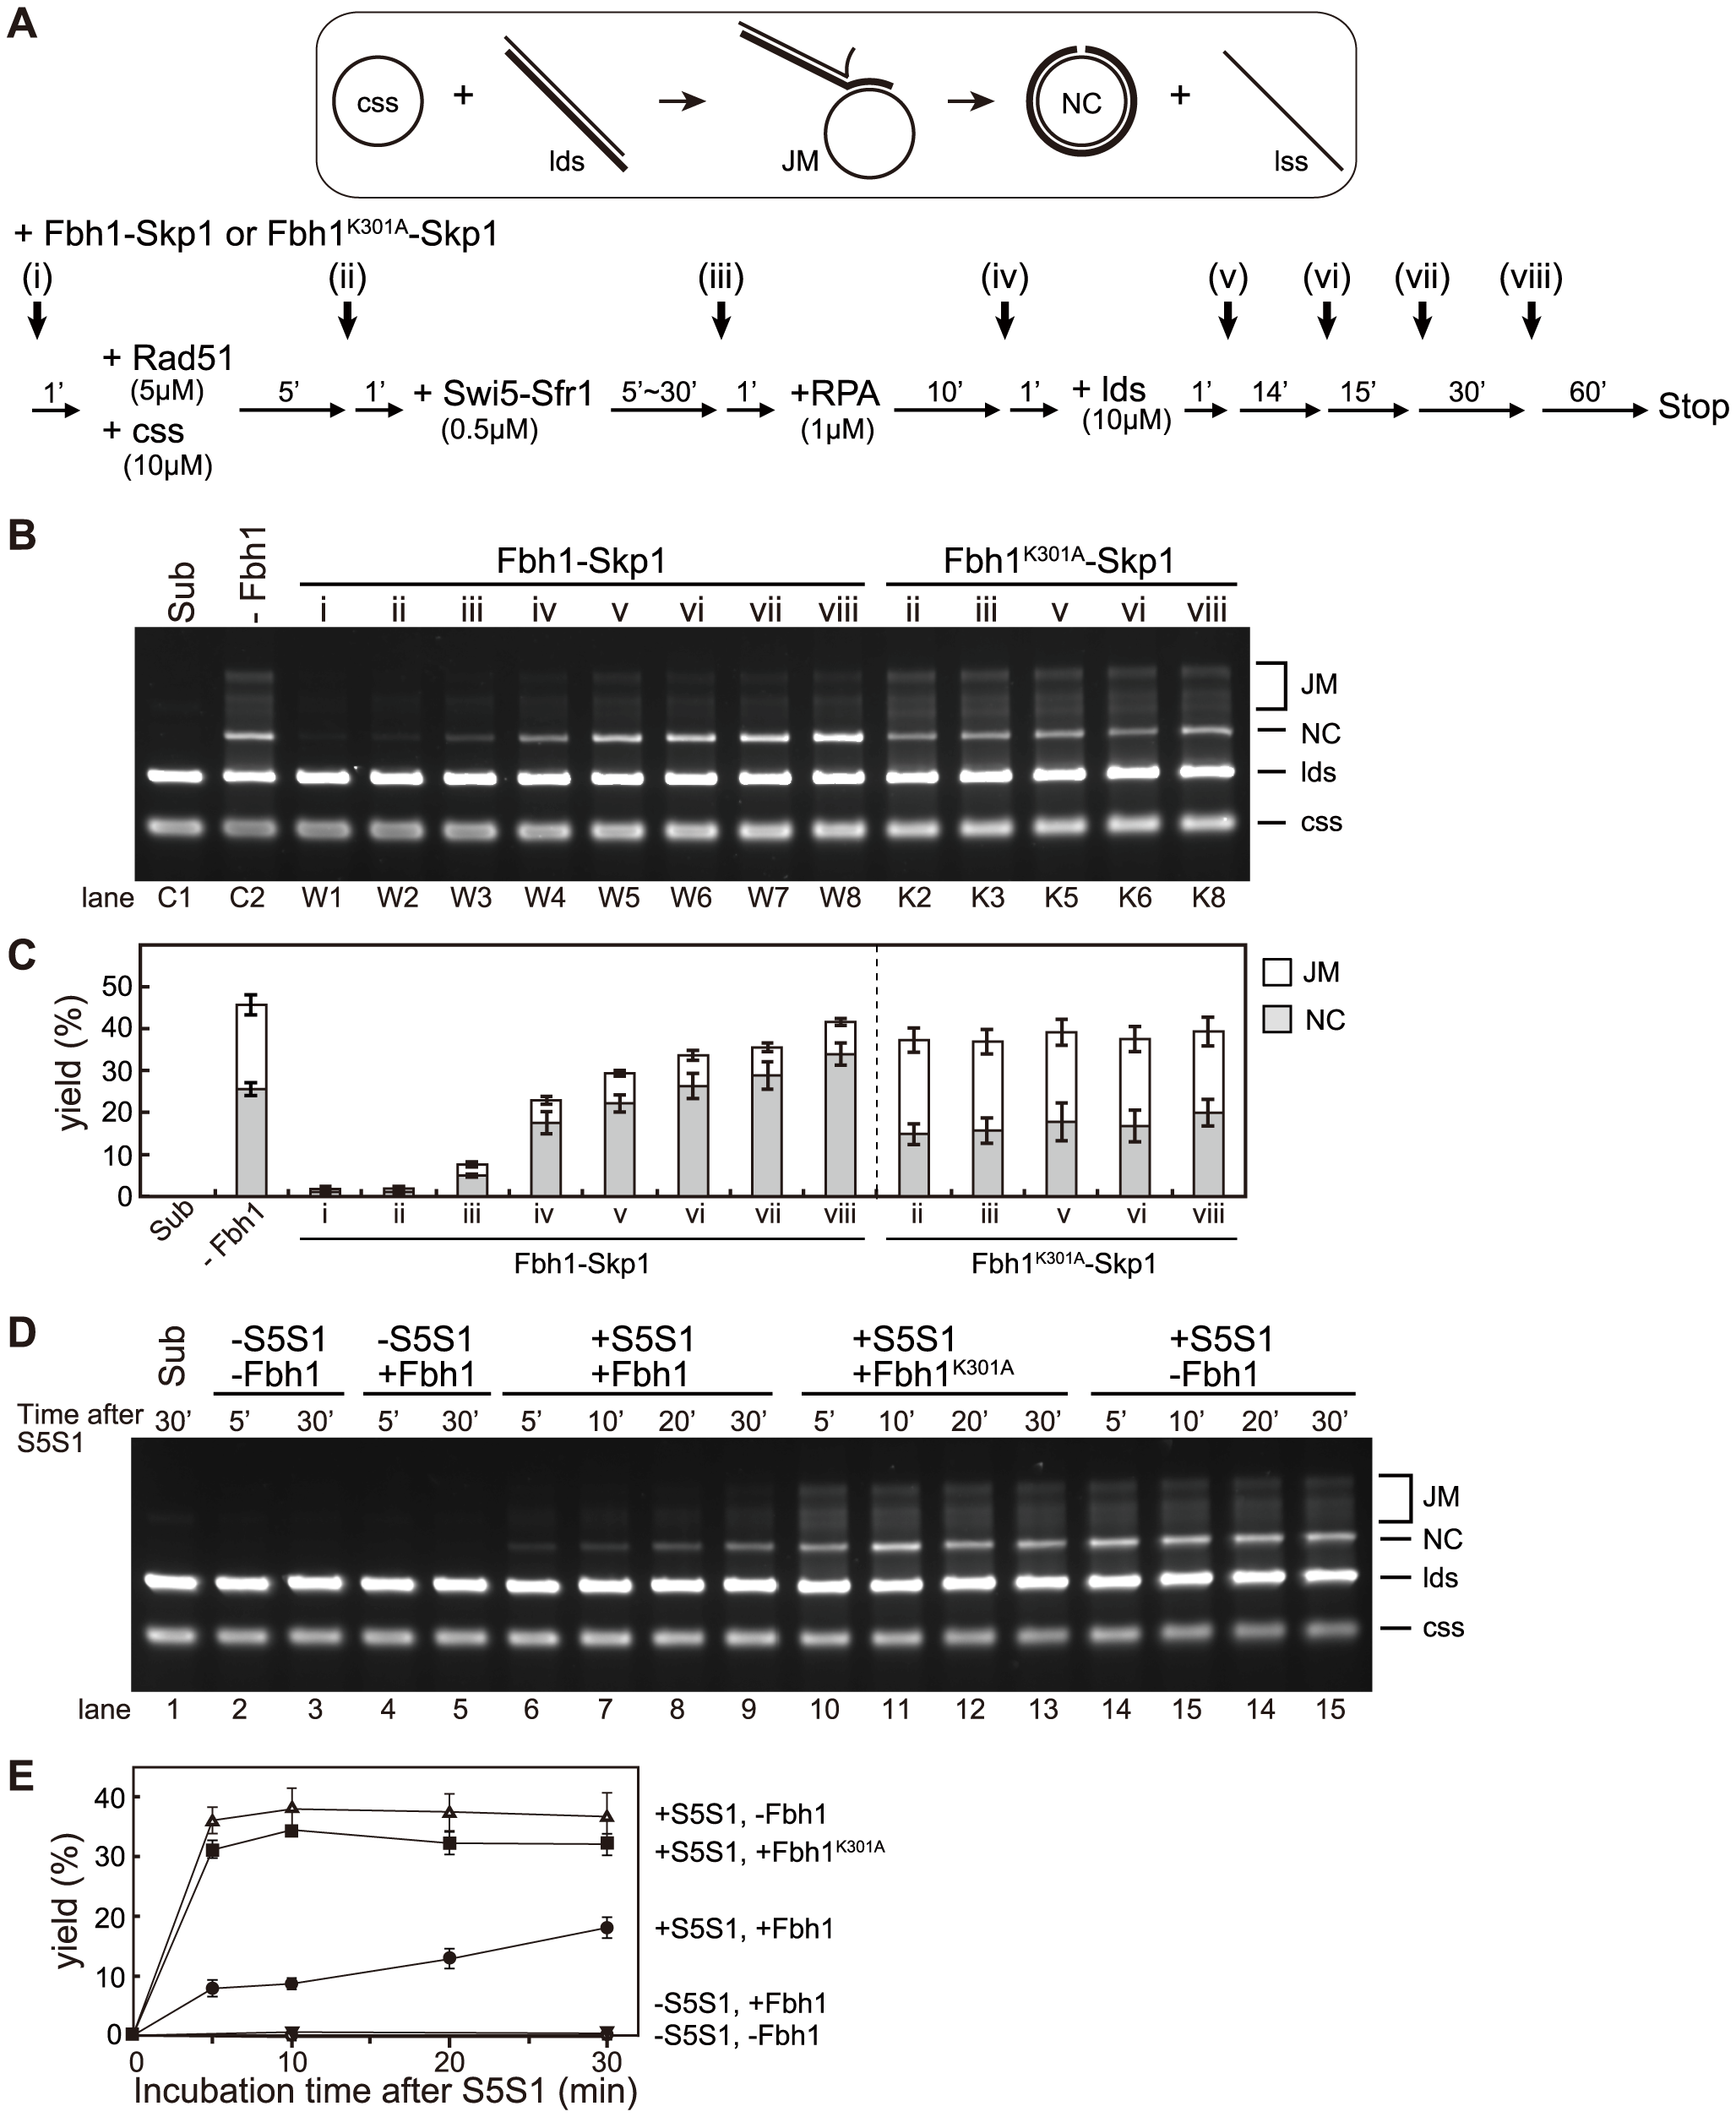 Fbh1 inhibits the strand-exchange reaction at early steps, but stimulates it at the late steps.